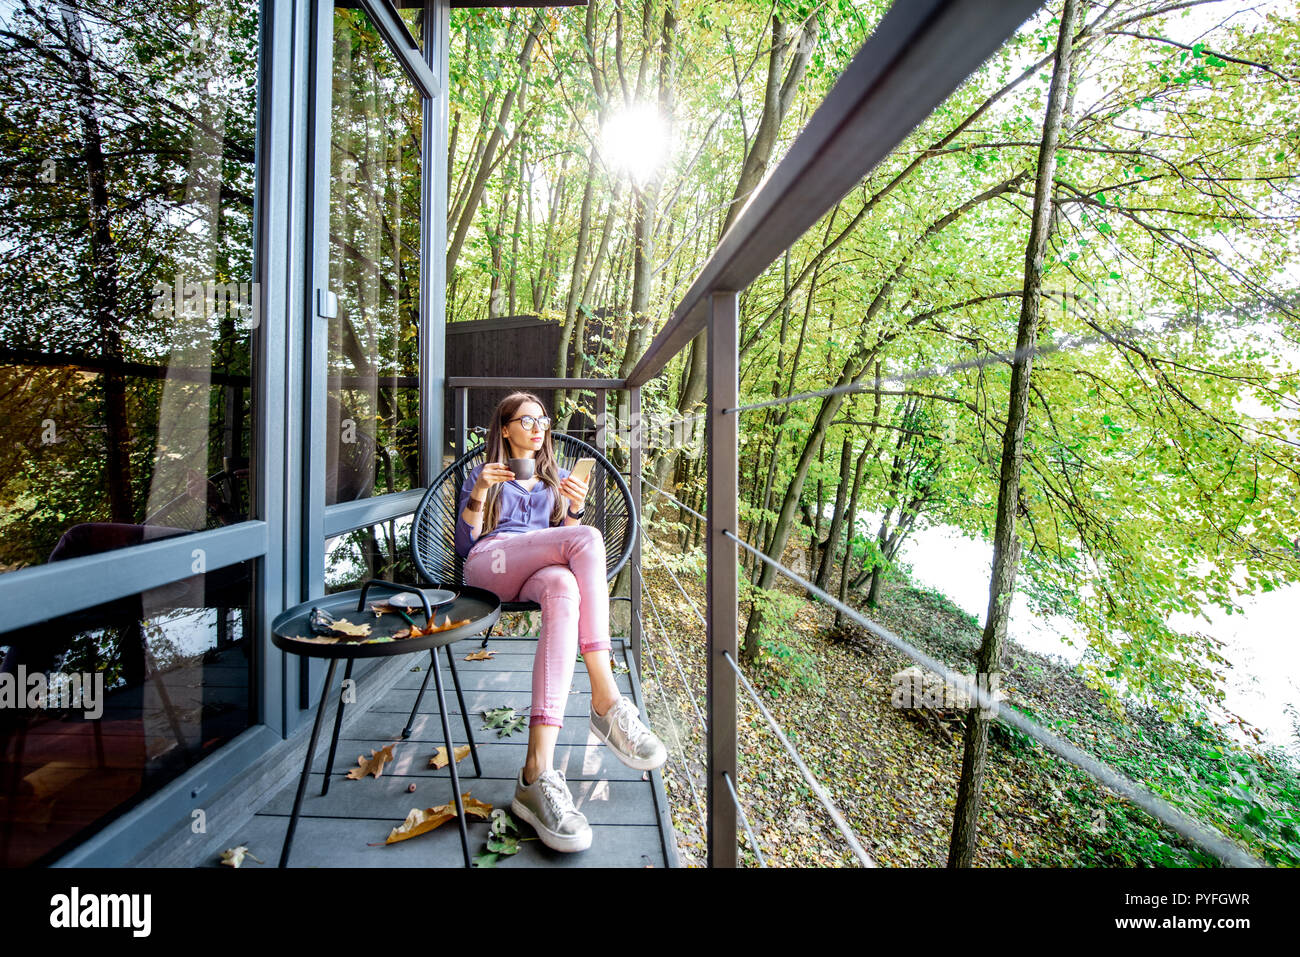 Young Woman Enjoying Nature Sitting With Coffee On The Balcony Of The House In The Beautiful Forest Stock Photo Alamy